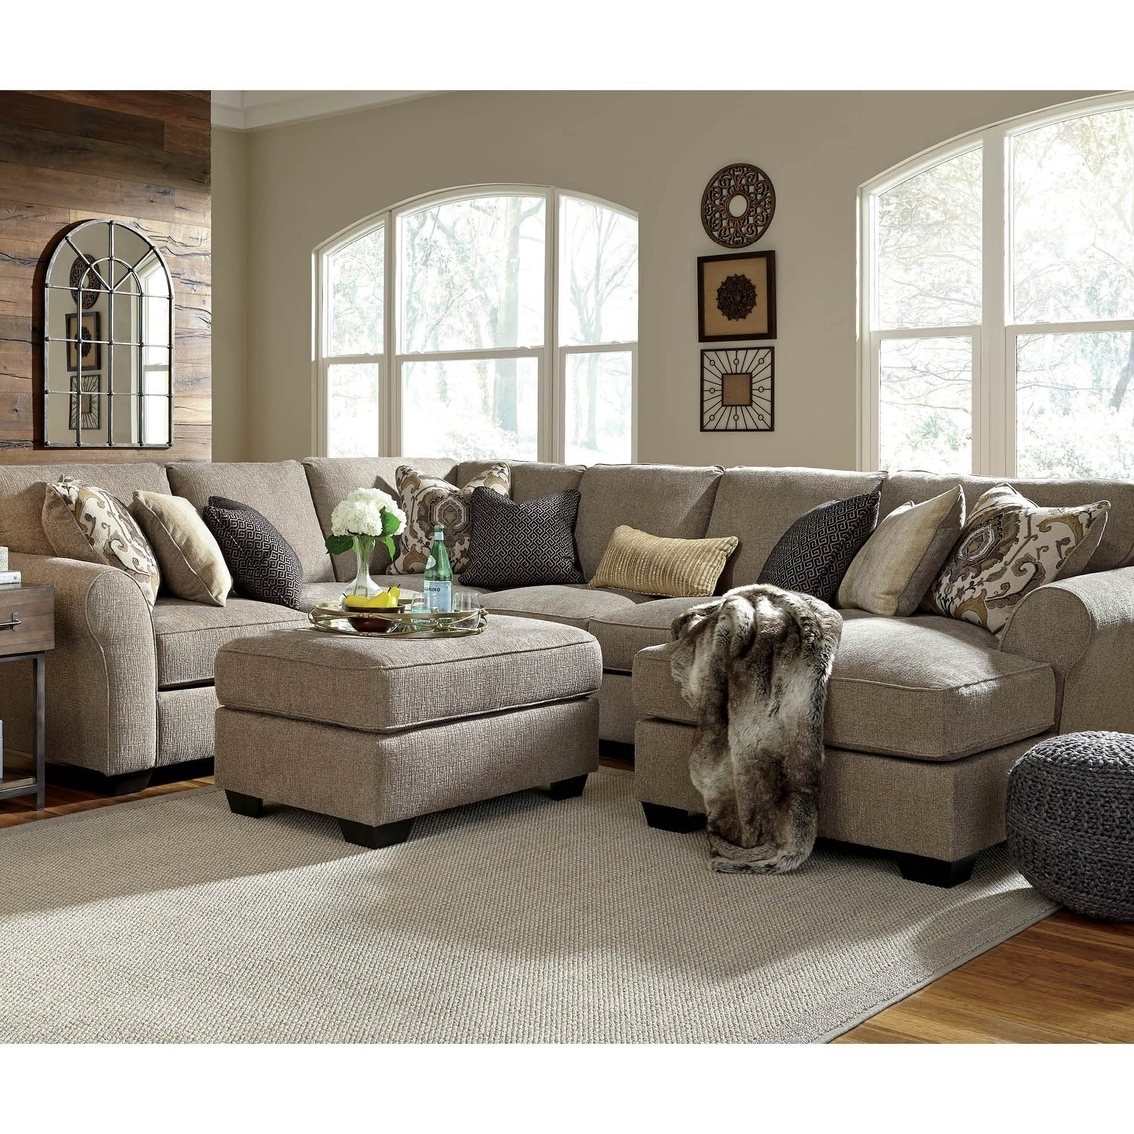 Laf Sofa Raf Loveseat | Baci Living Room Within Turdur 2 Piece Sectionals With Laf Loveseat (View 13 of 25)